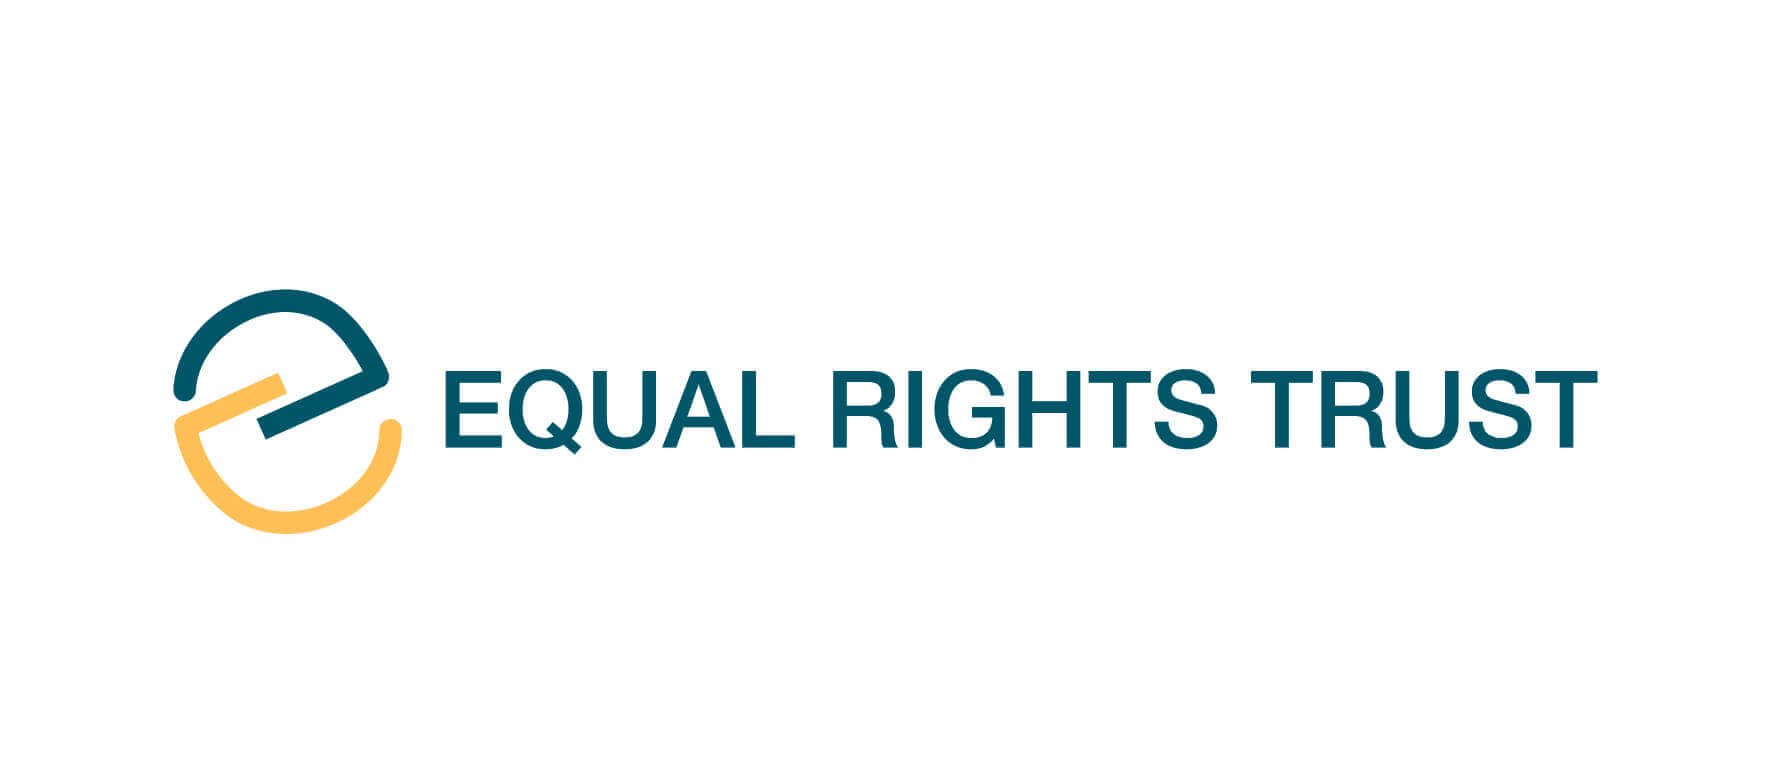 Equal Rights Trust Five Year Strategy